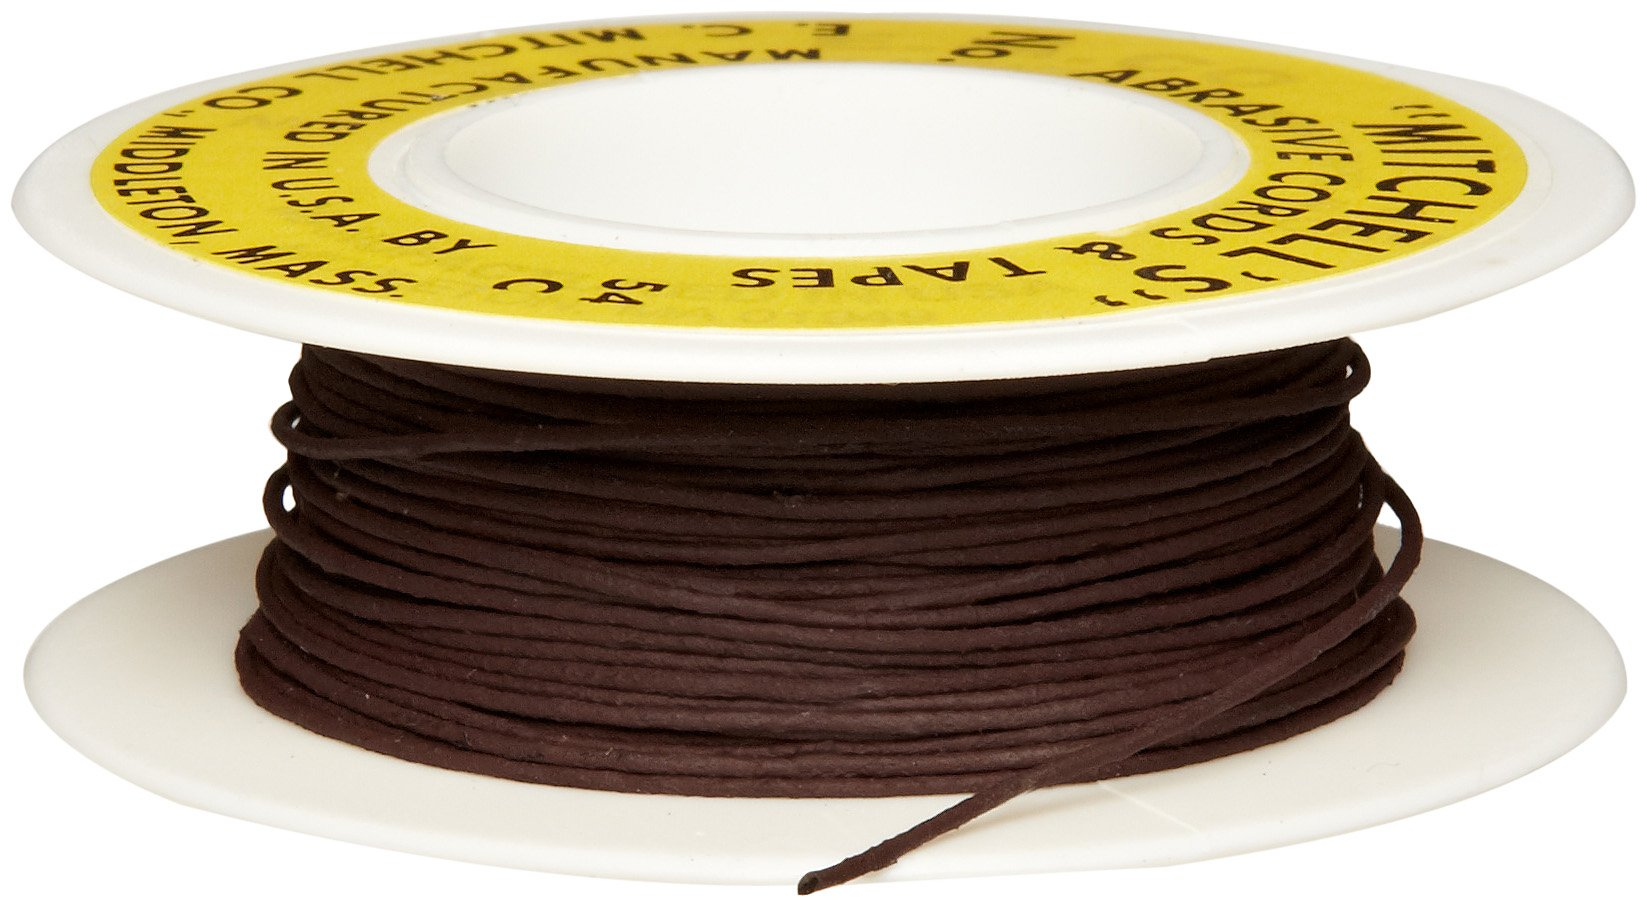 Mitchell Abrasives 54-C Round Crocus Polishing Cord, .030'' Diameter x 50 Feet by Mitchell Abrasives